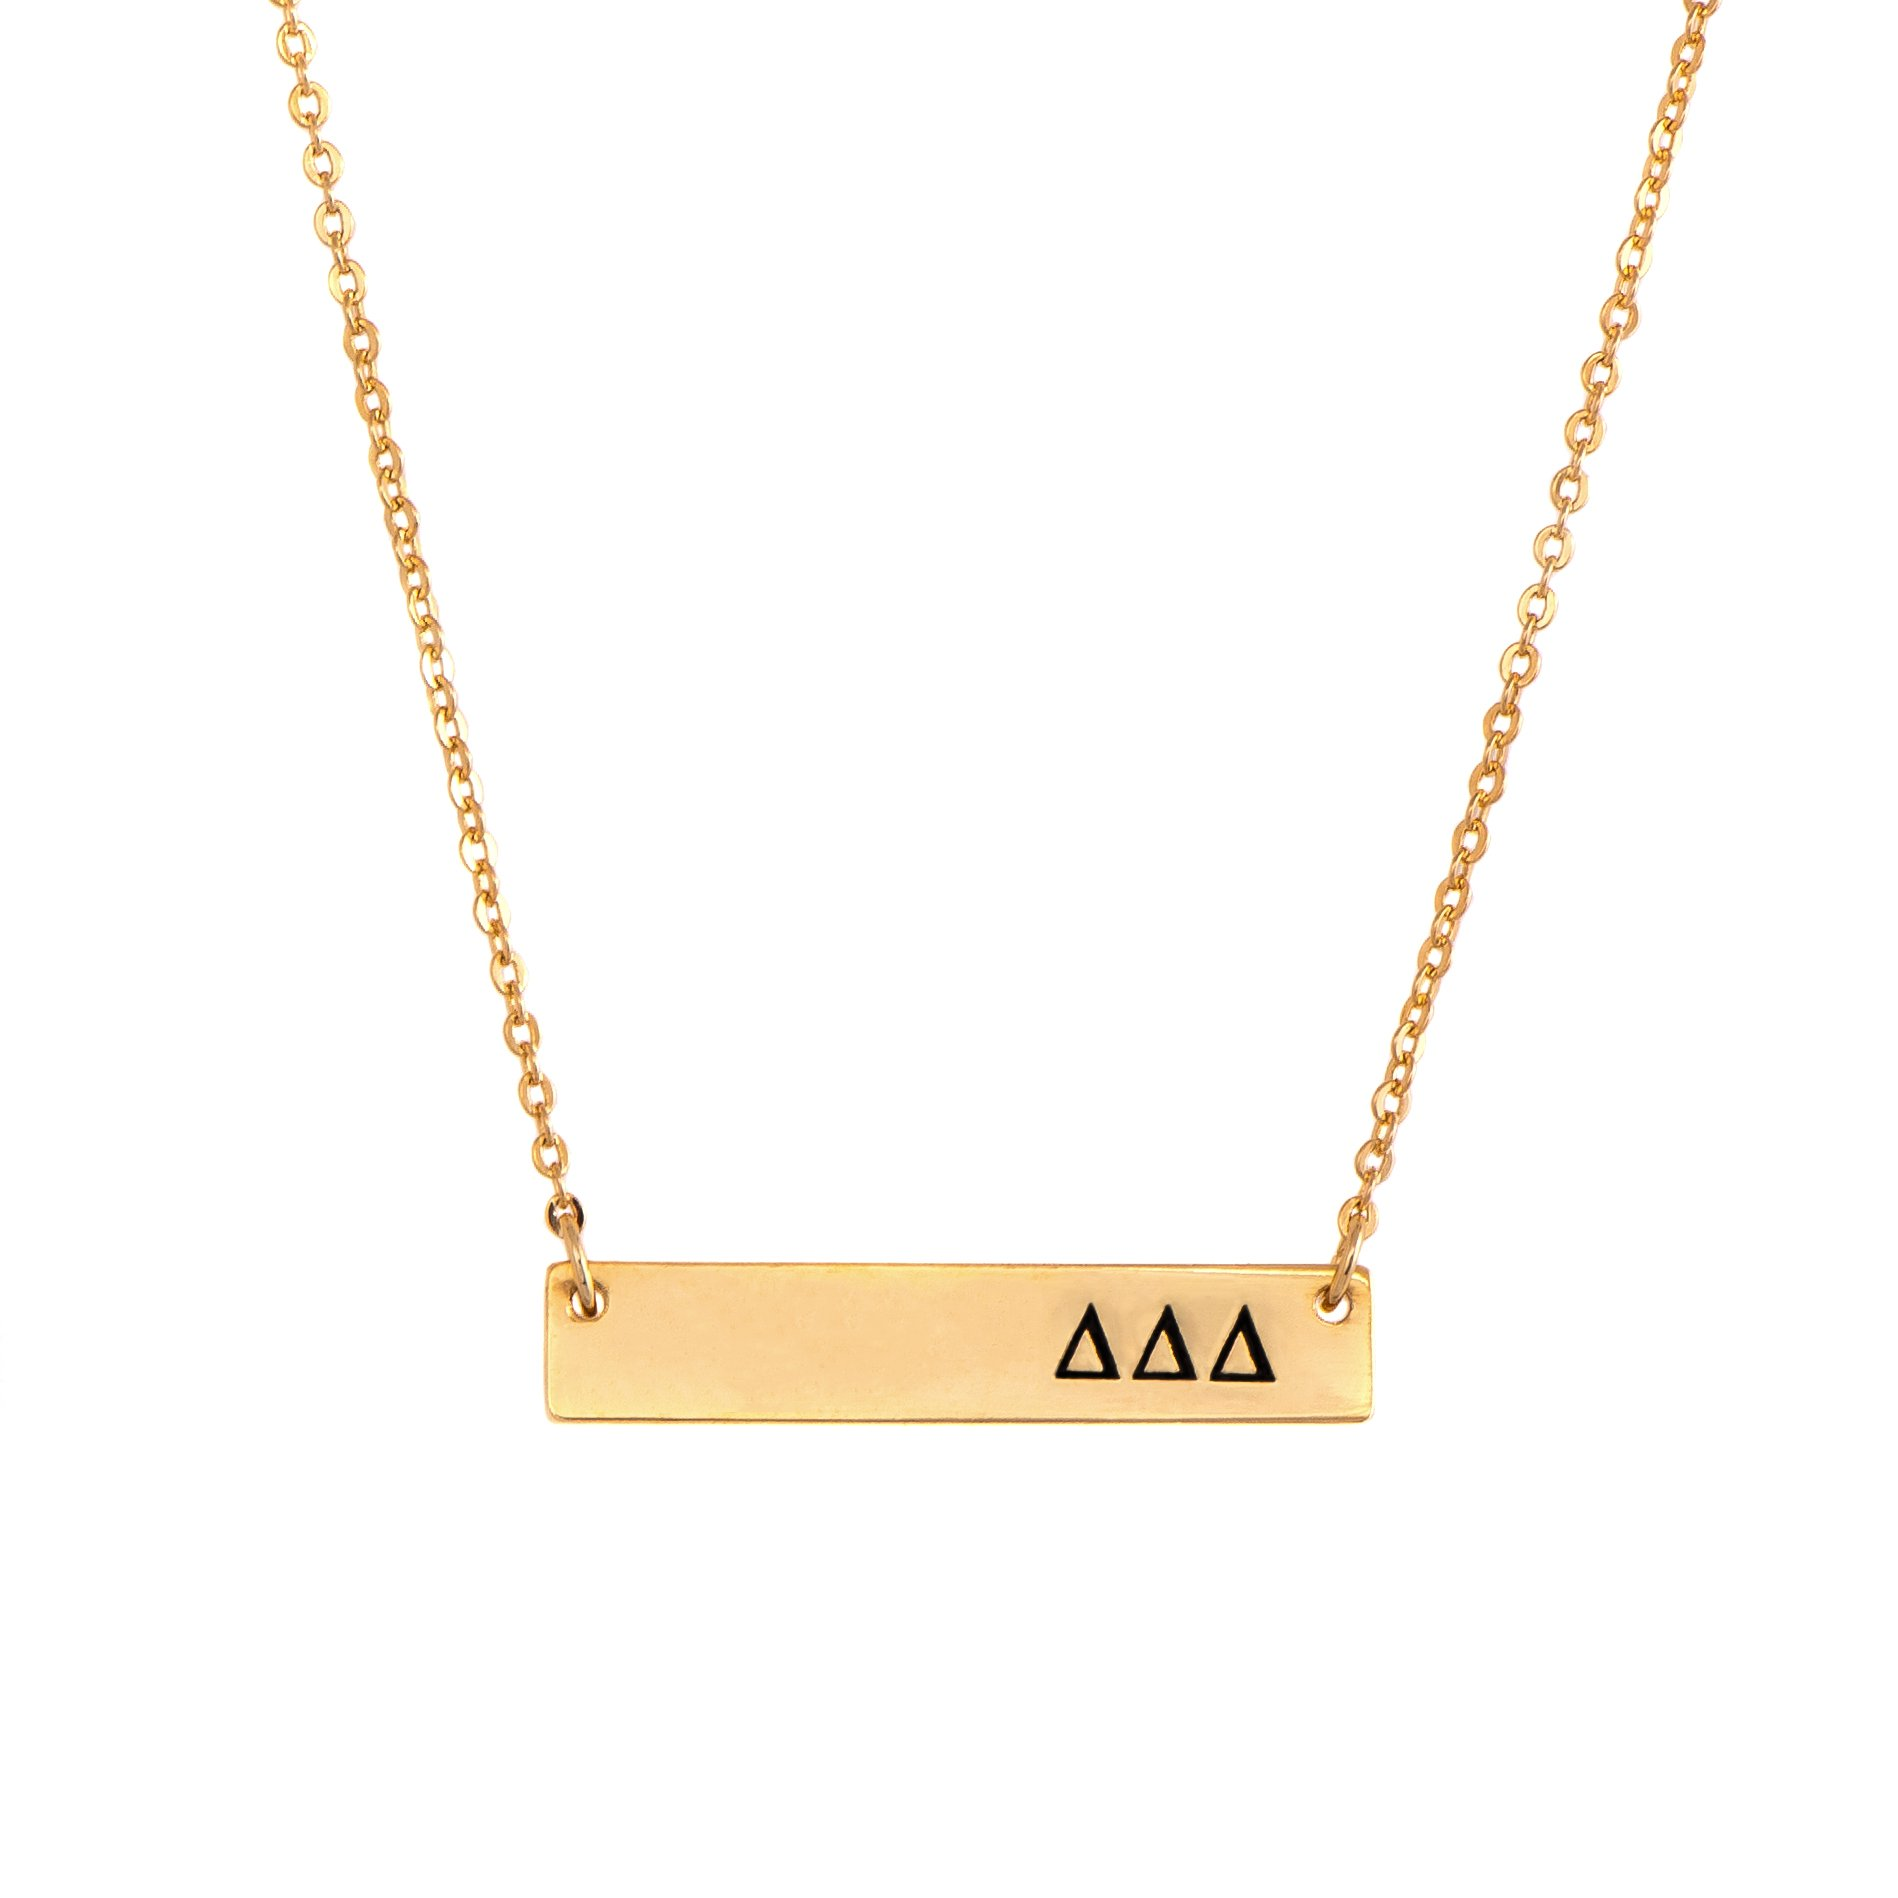 Delta Delta Delta Tri-Delt 24K Gold Plated Horizontal Bar Necklace Greek Sorority Letter with Adjustable Chain